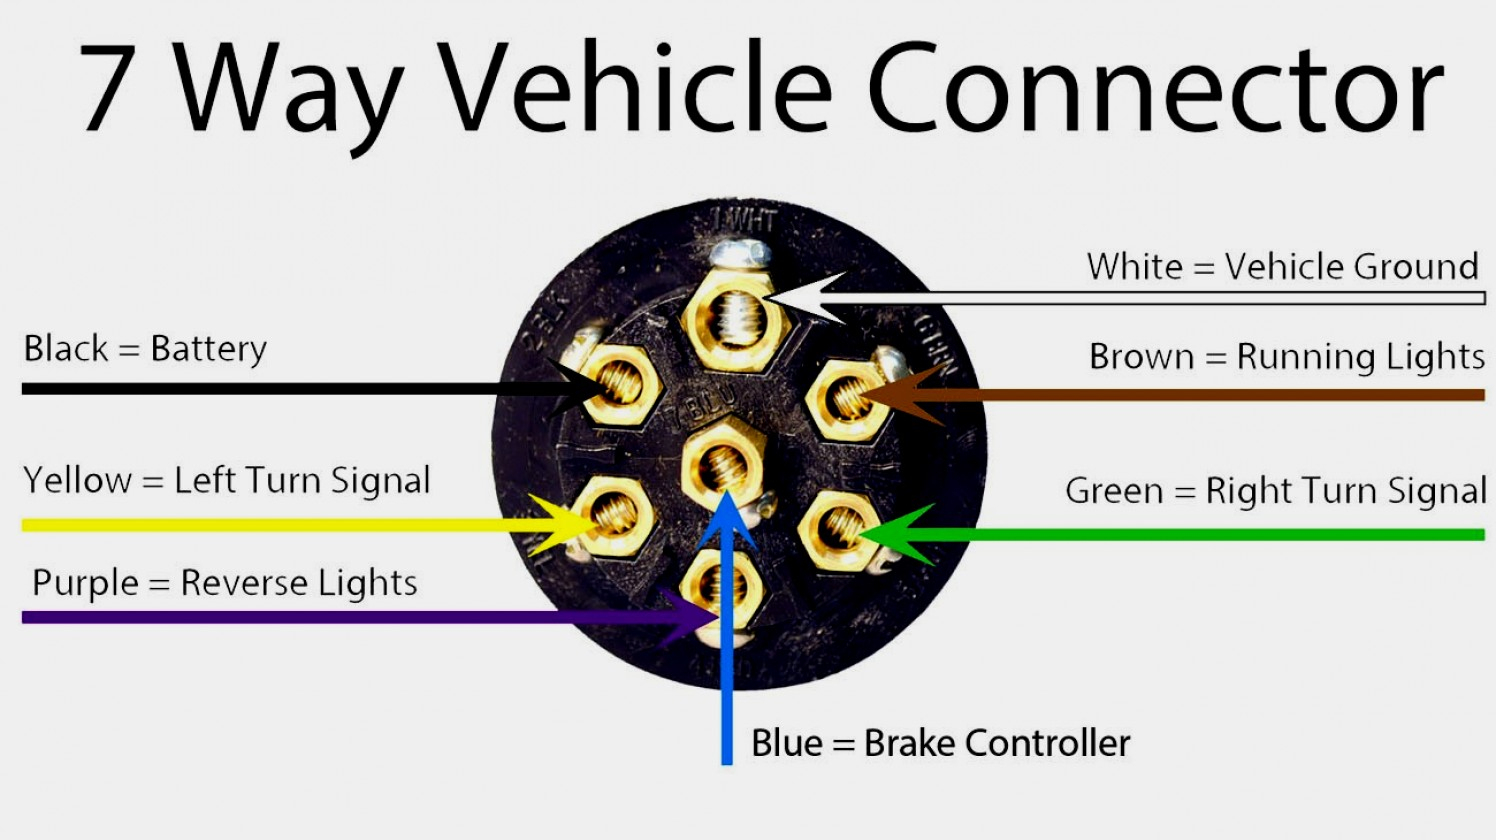 Wiring Diagram For Trailer Lights South Africa - Wiring Diagrams Img - Trailer Wiring Diagram 7 Pin Round South Africa